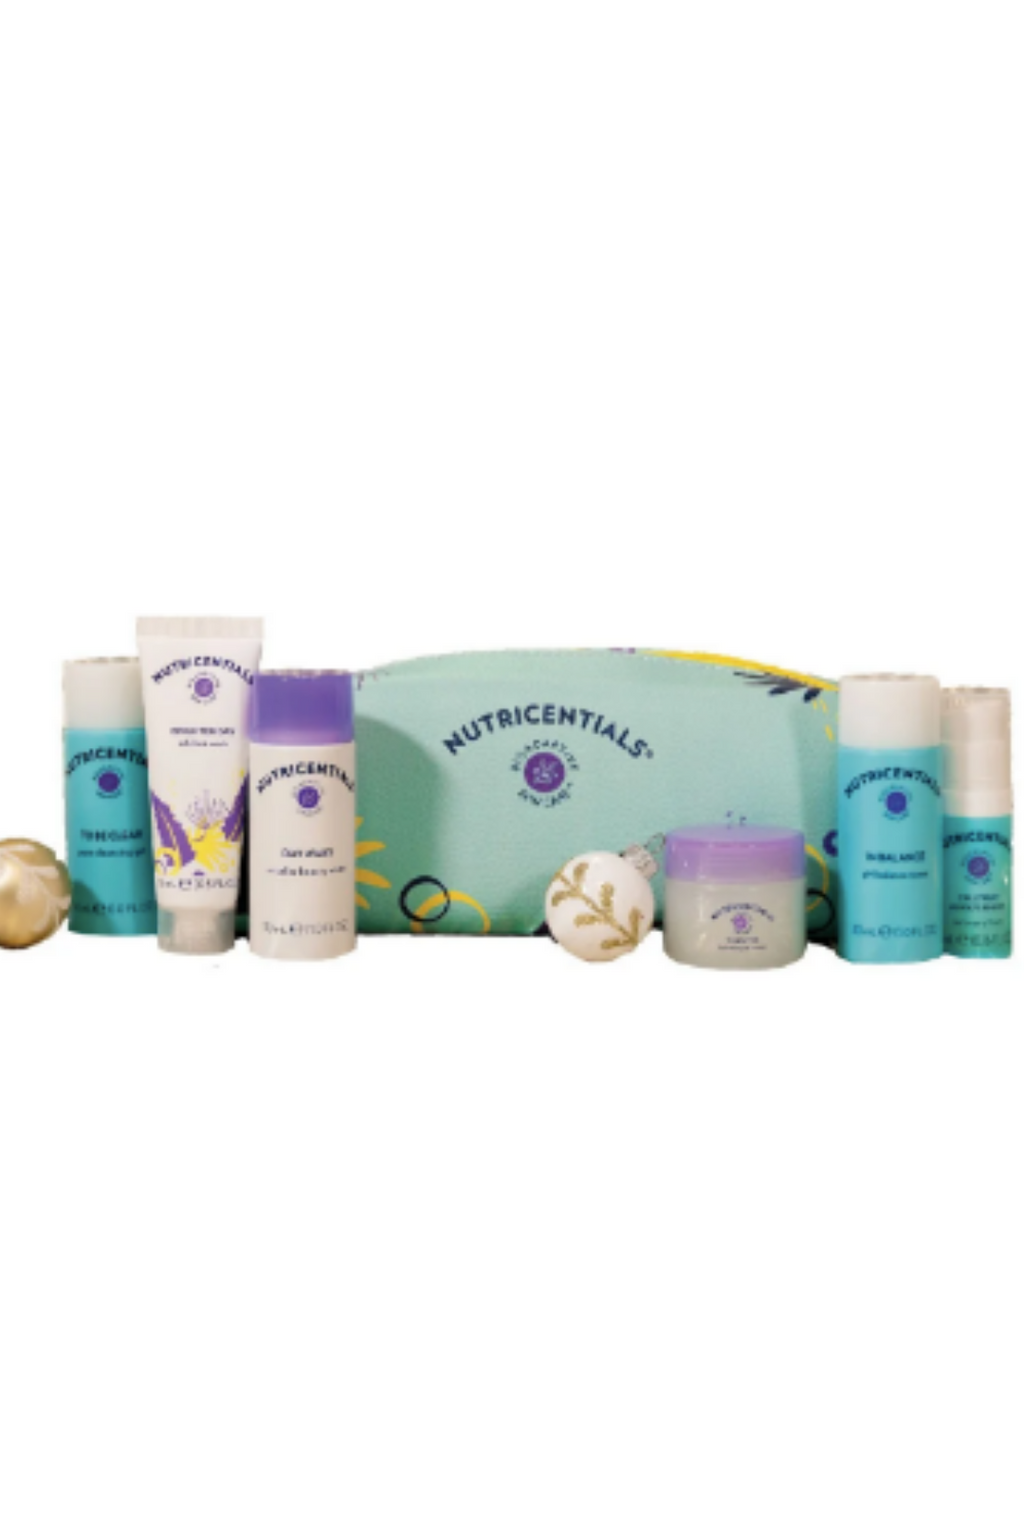 Nutricentials Trial Set